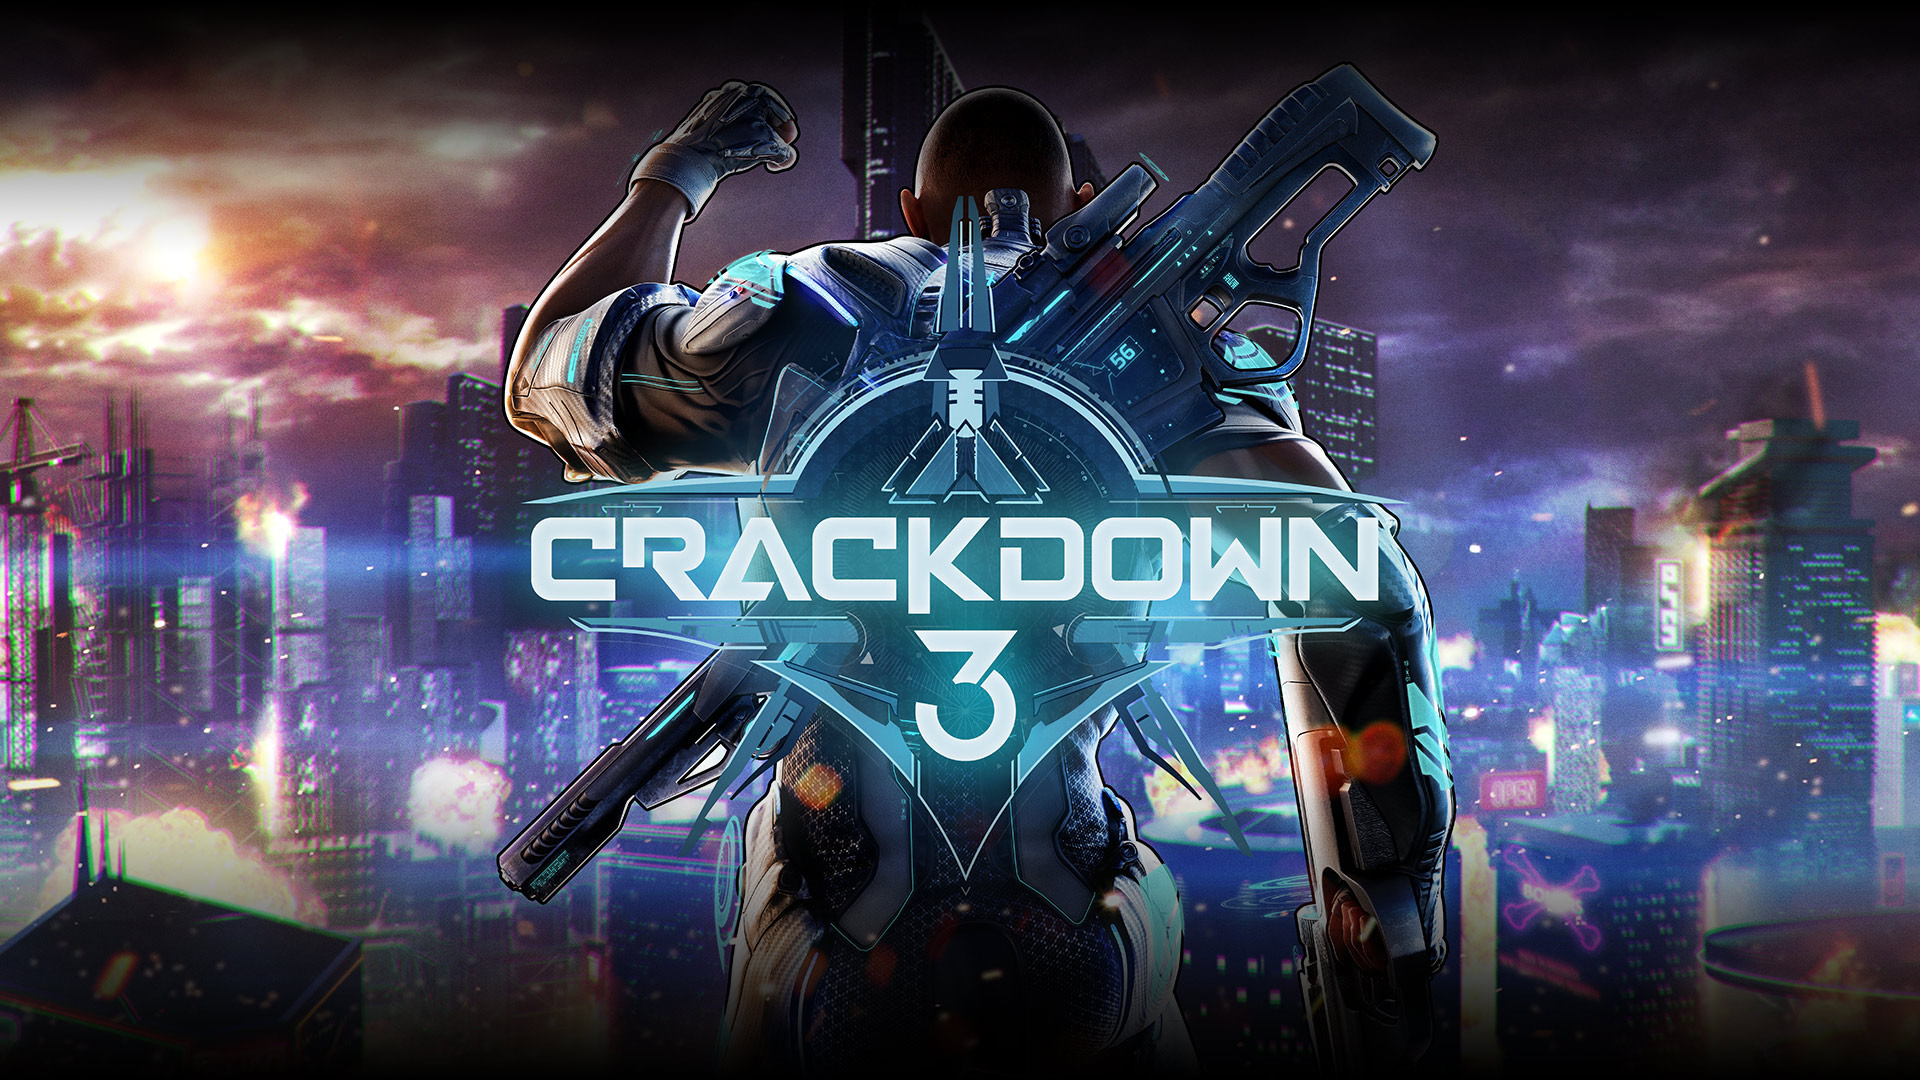 how to save, crackdown 3